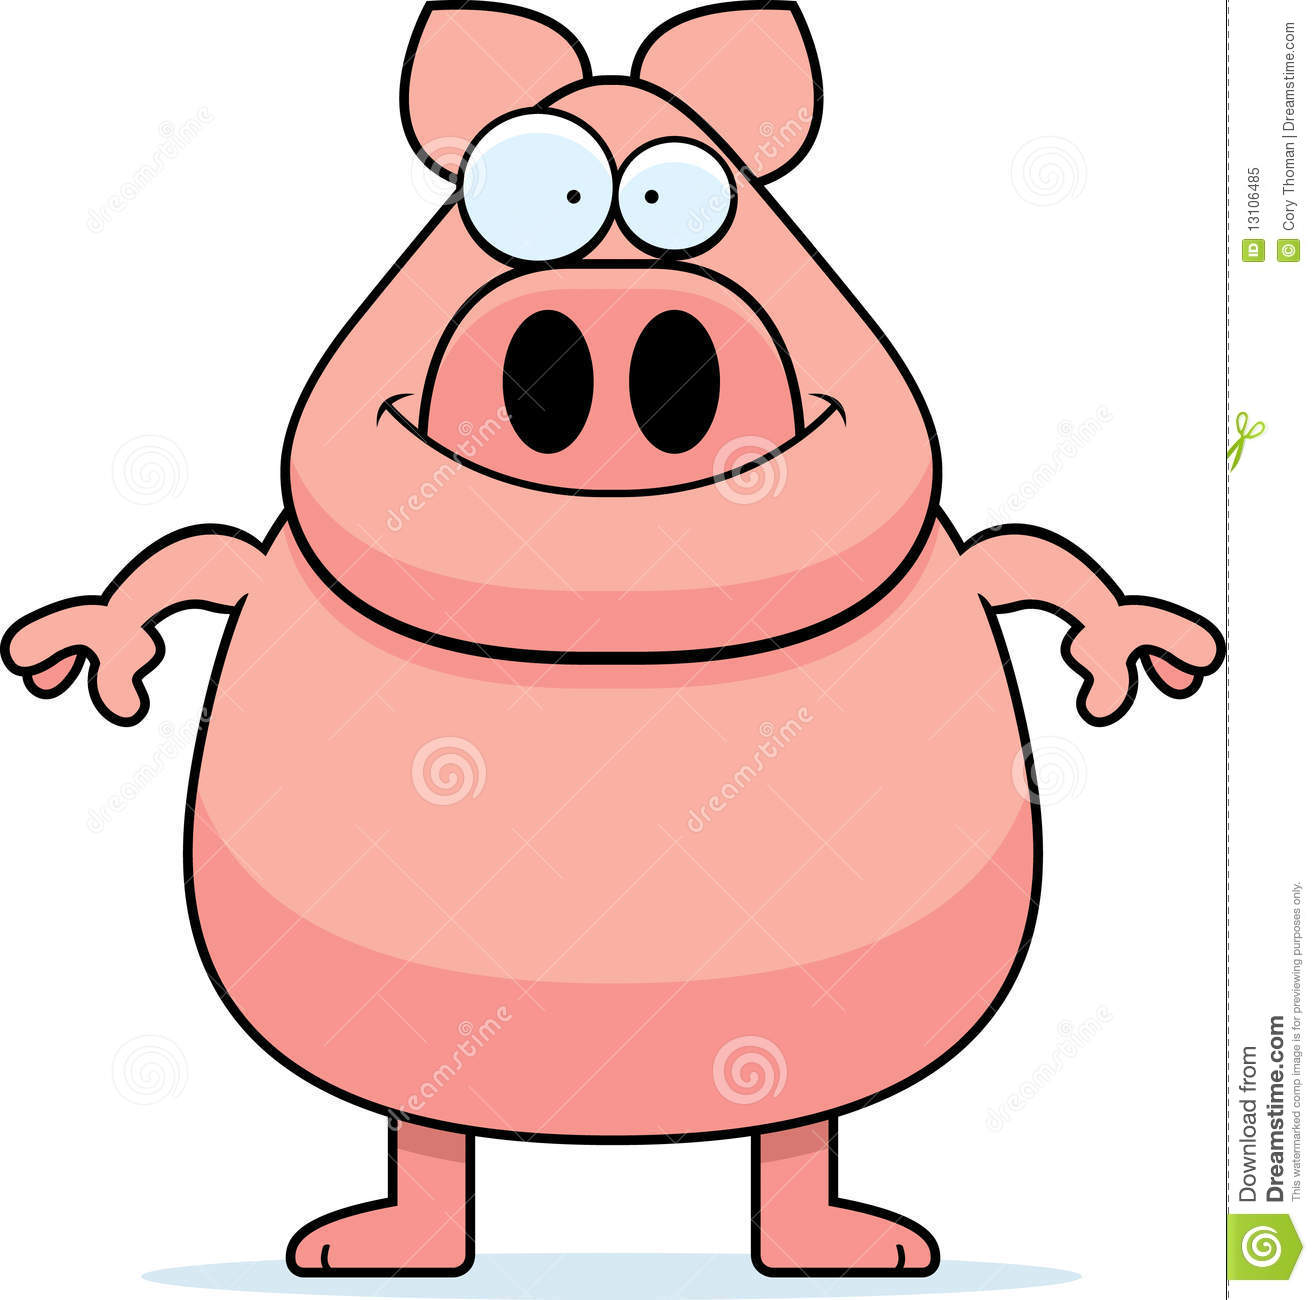 Animated pigs standing - photo#3